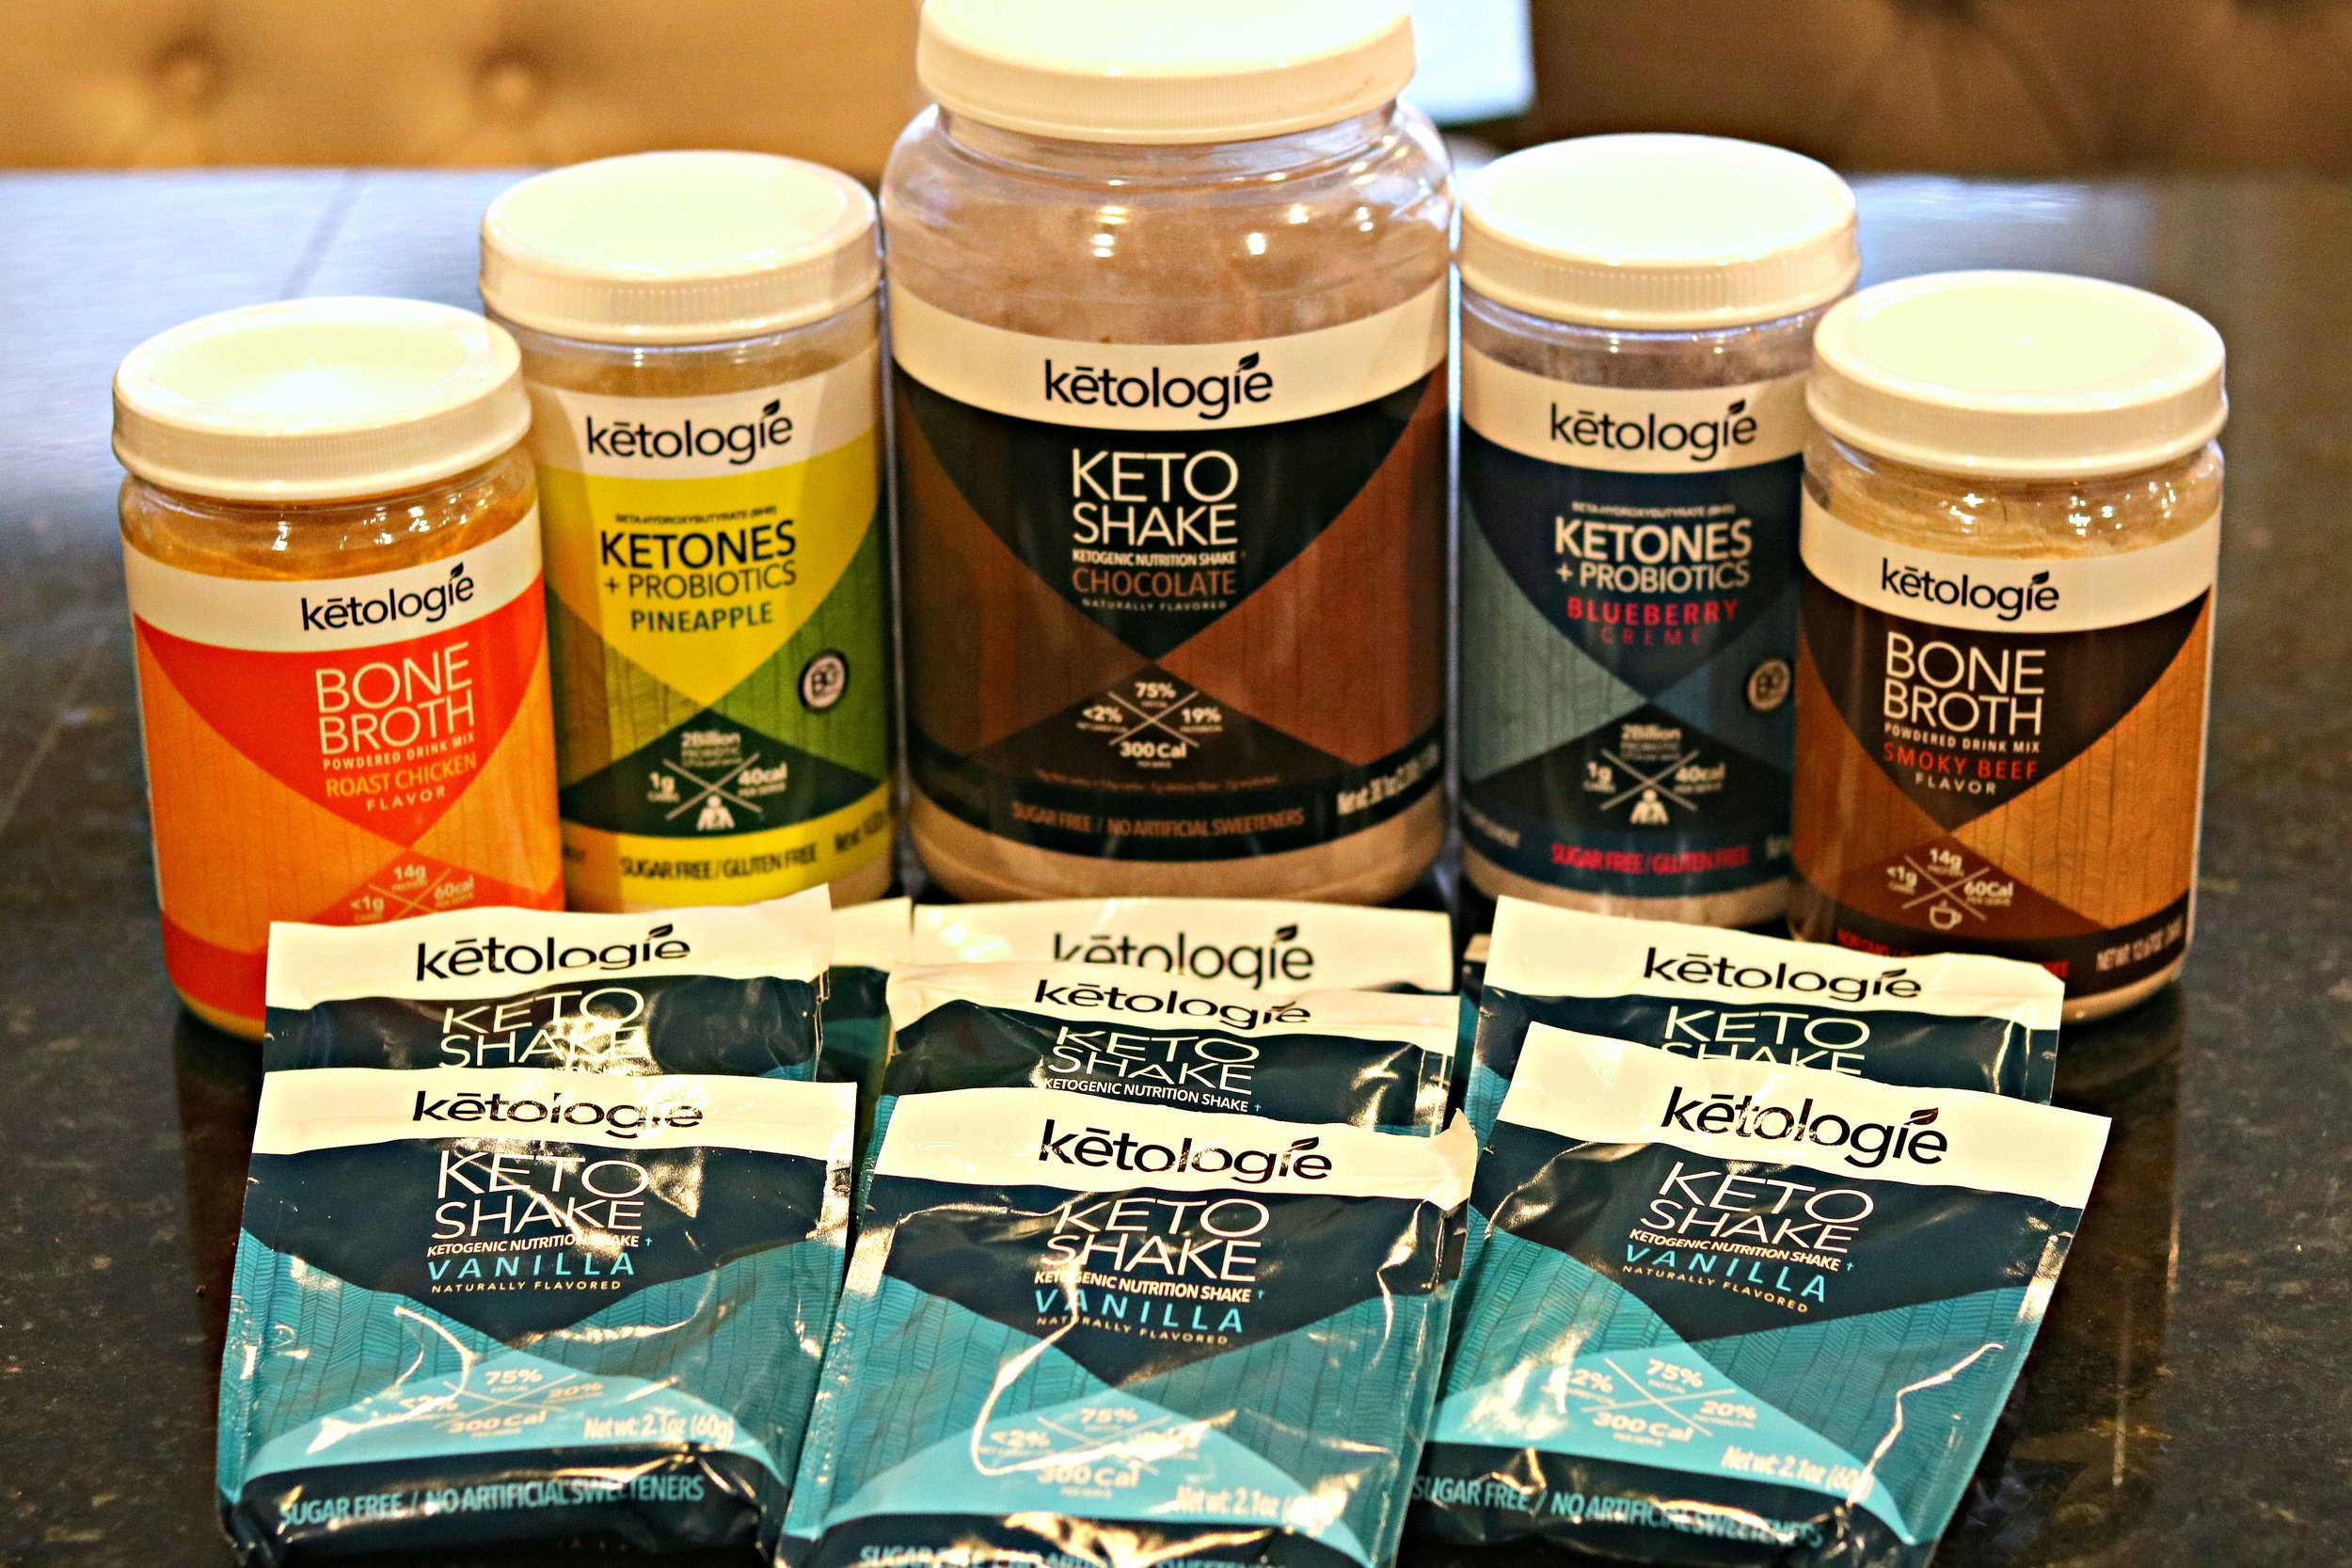 An assorted collection of Ketologie products